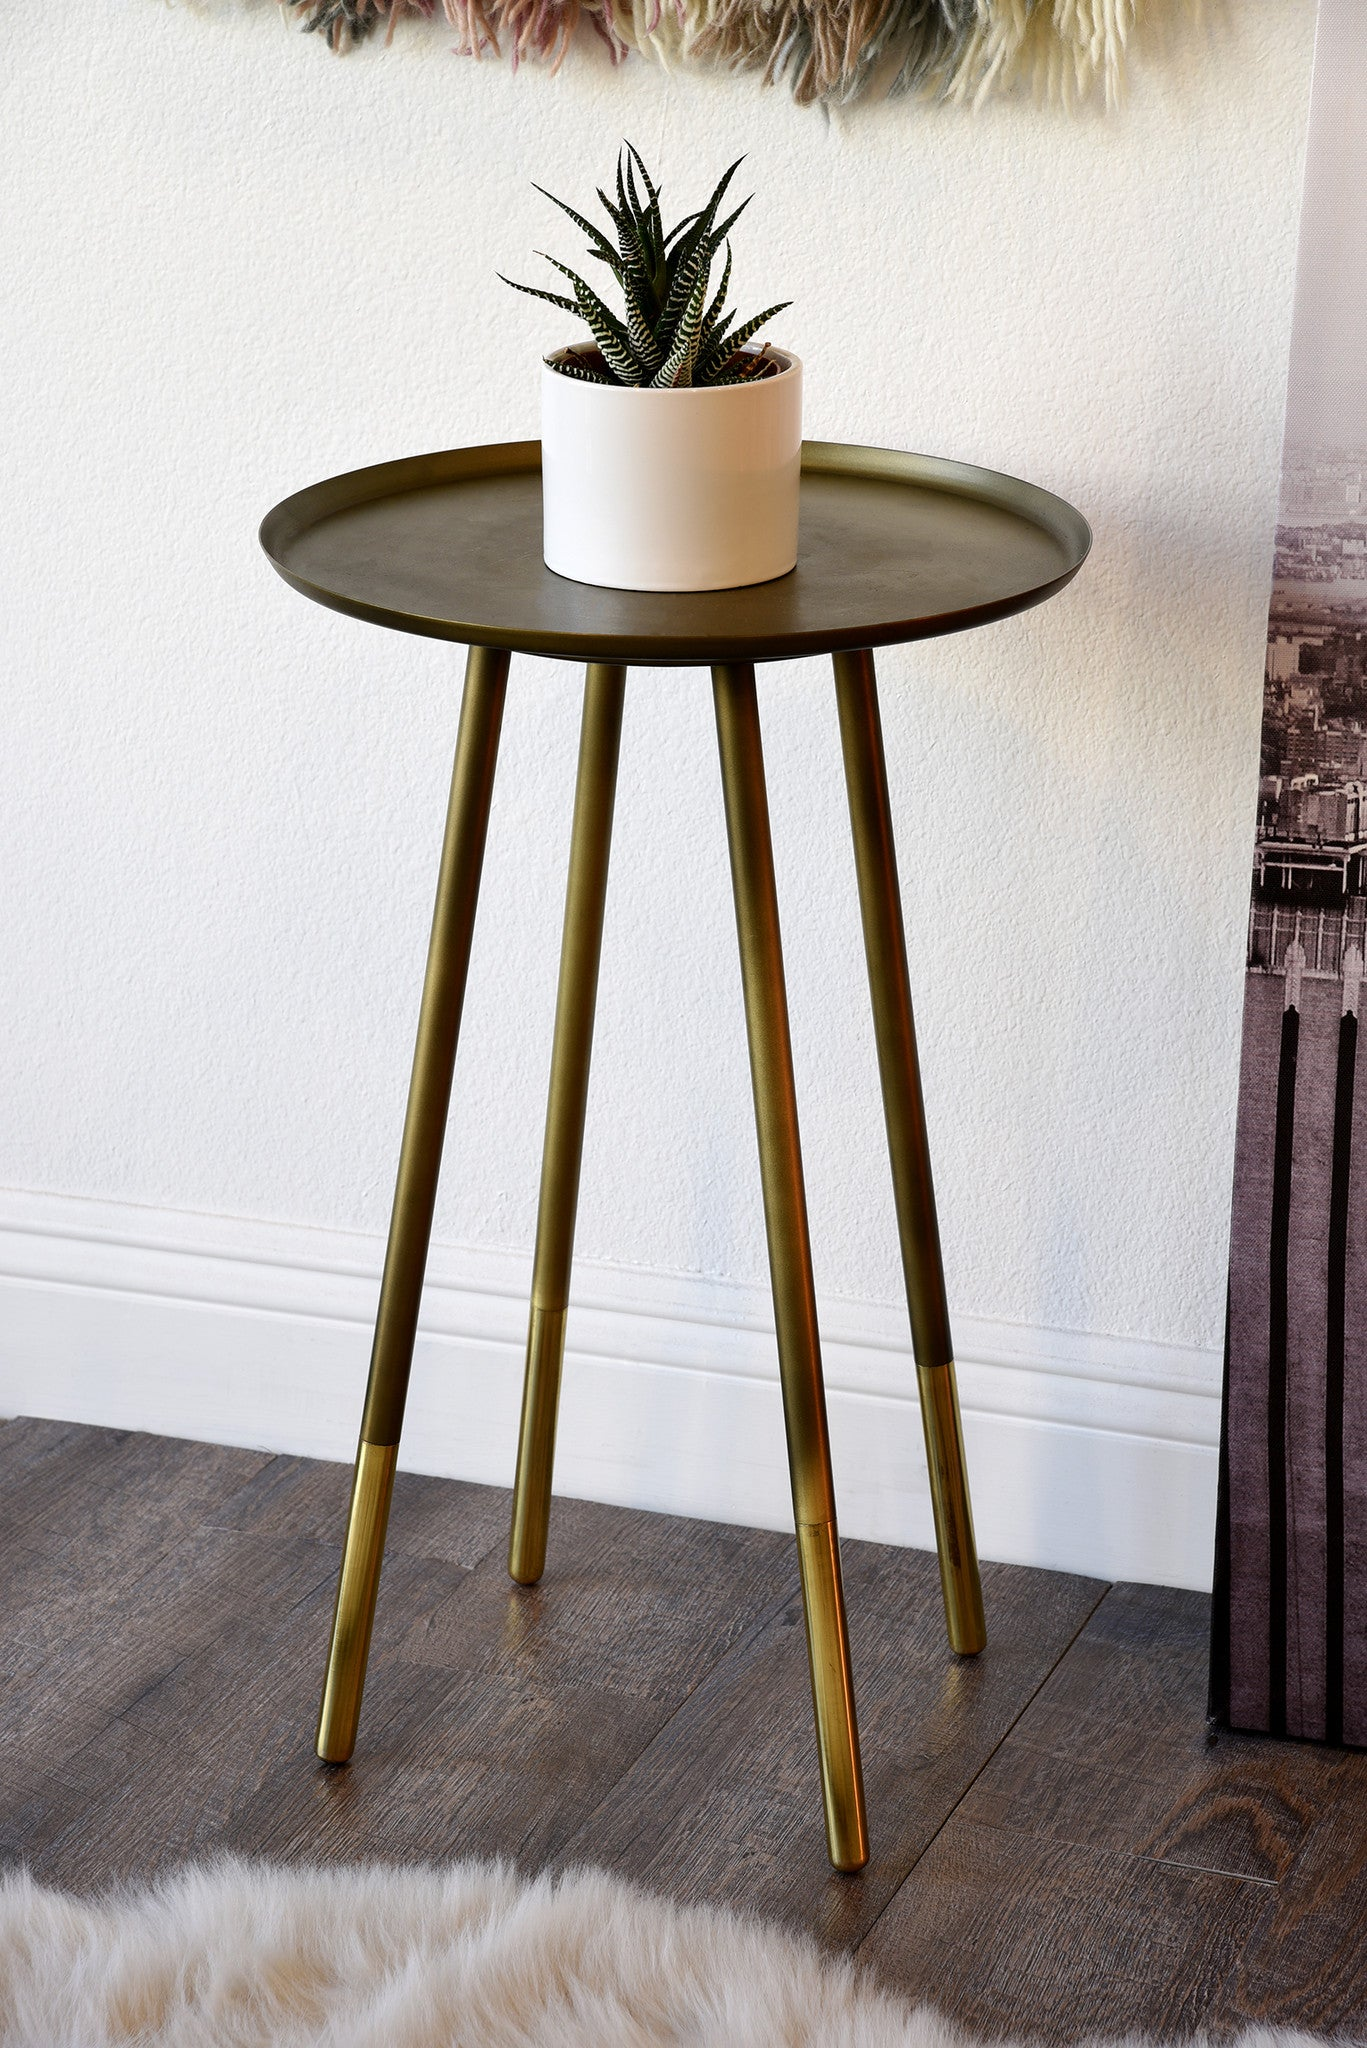 Retro Mid Century Modern End Table   Antiqued And Polished Brass